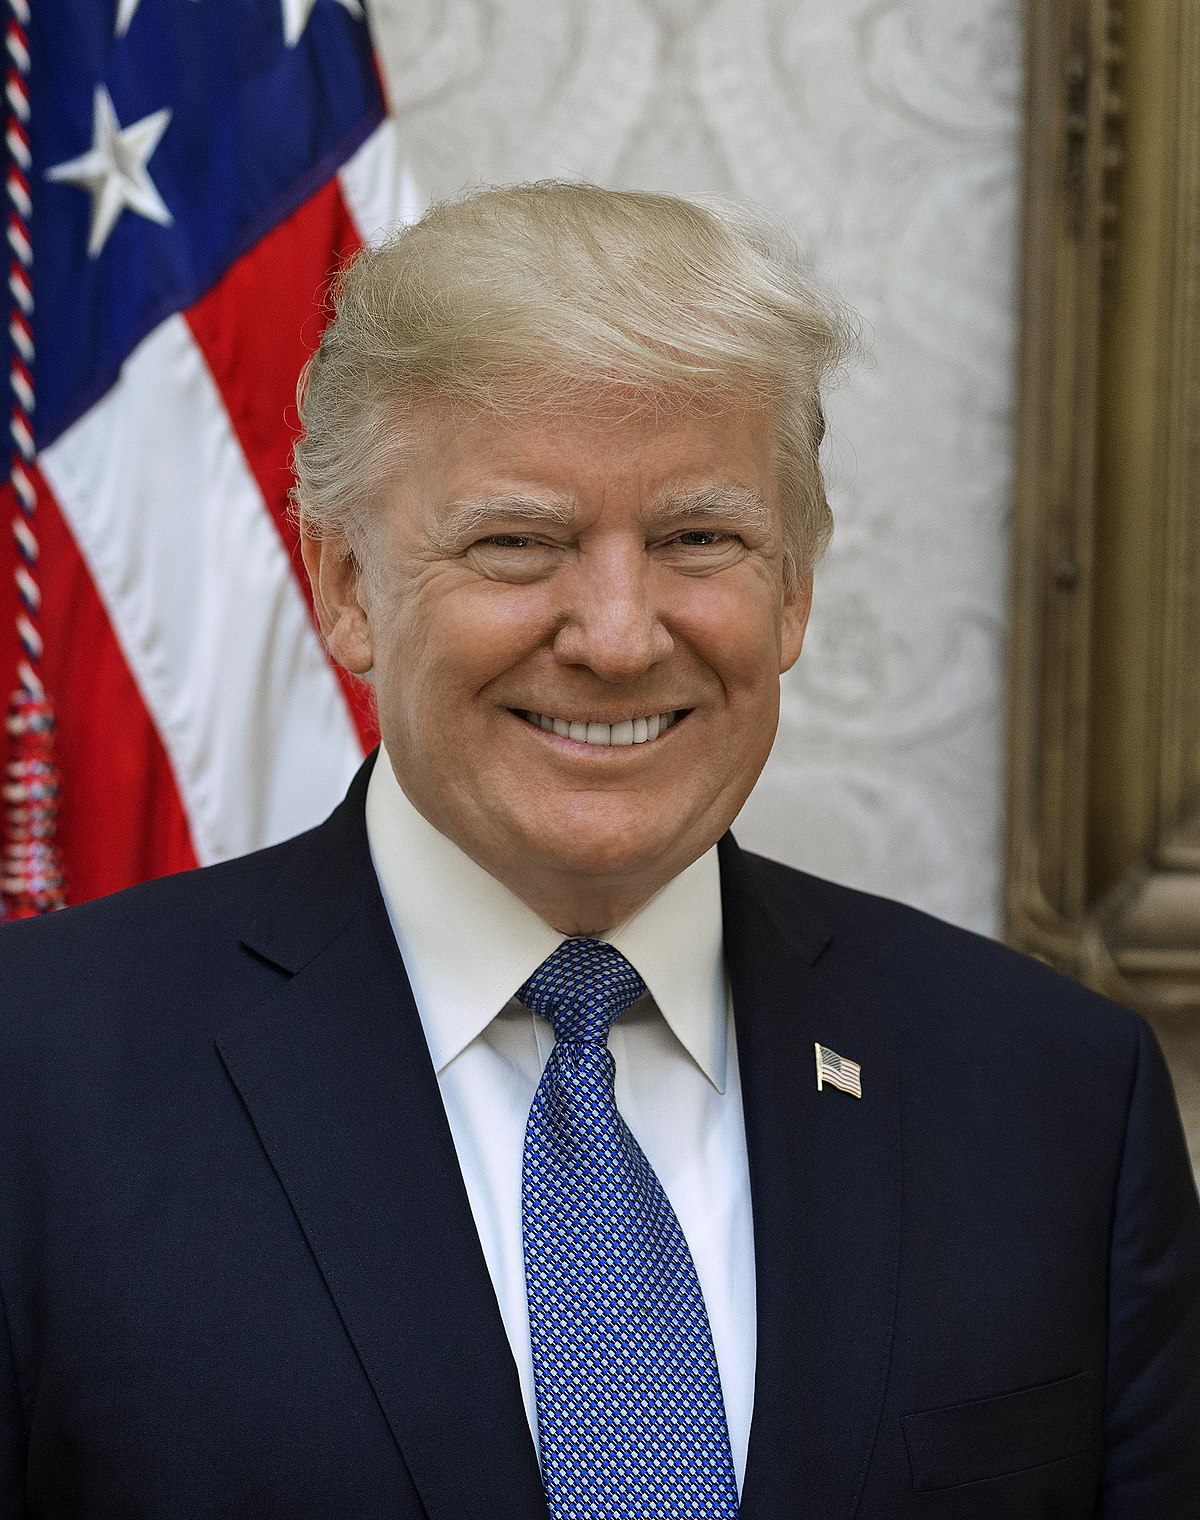 1200px-Donald_Trump_official_portrait.jpg